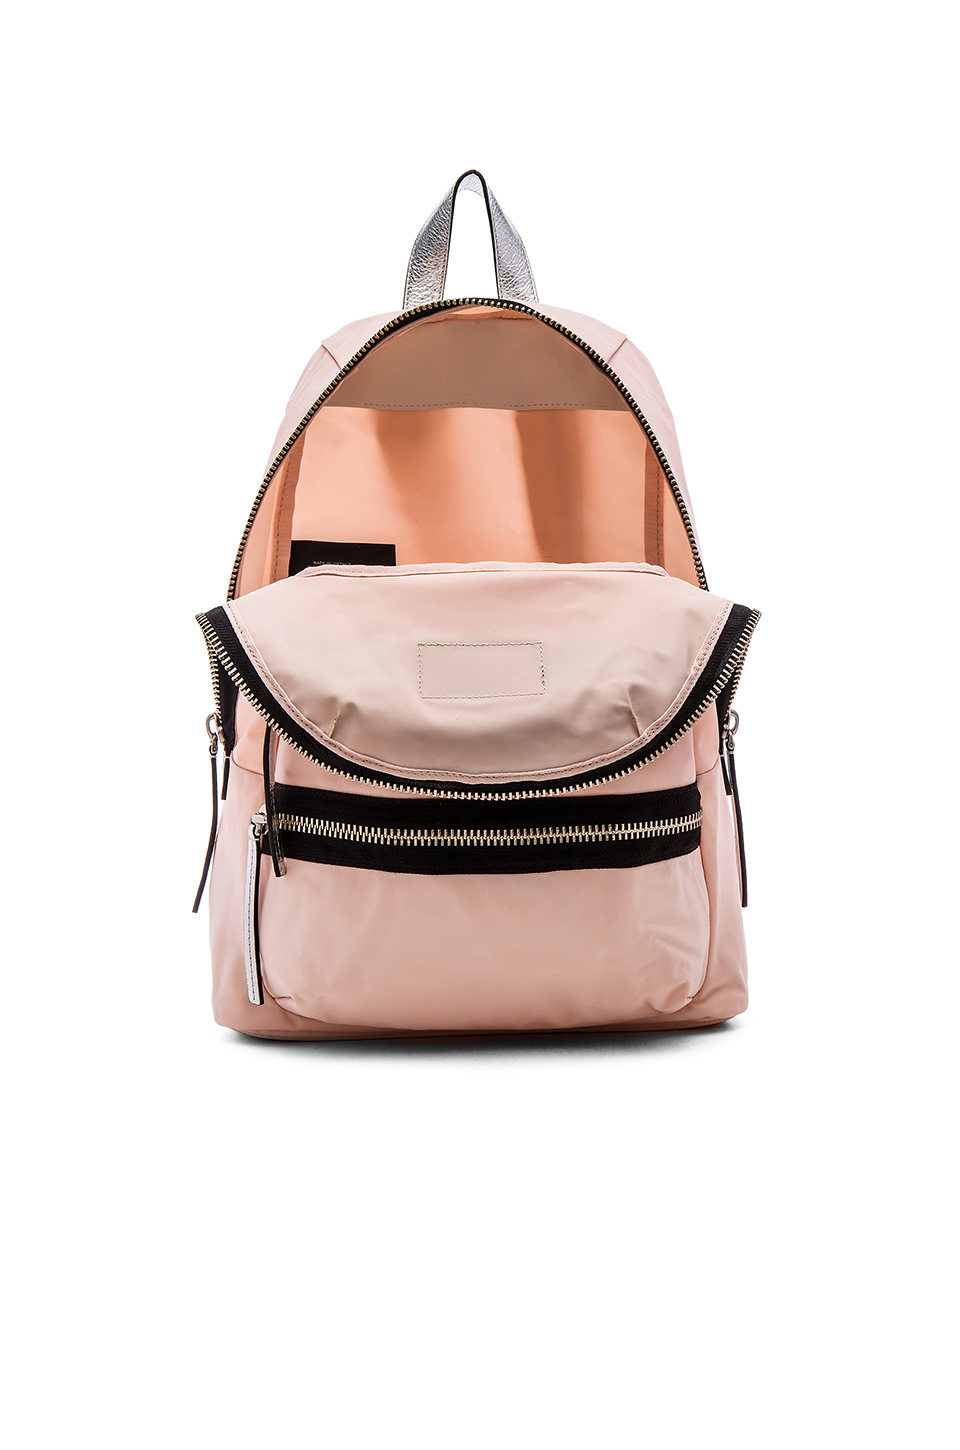 marc by marc jacobs domo arigato packrat backpack in pink lyst. Black Bedroom Furniture Sets. Home Design Ideas